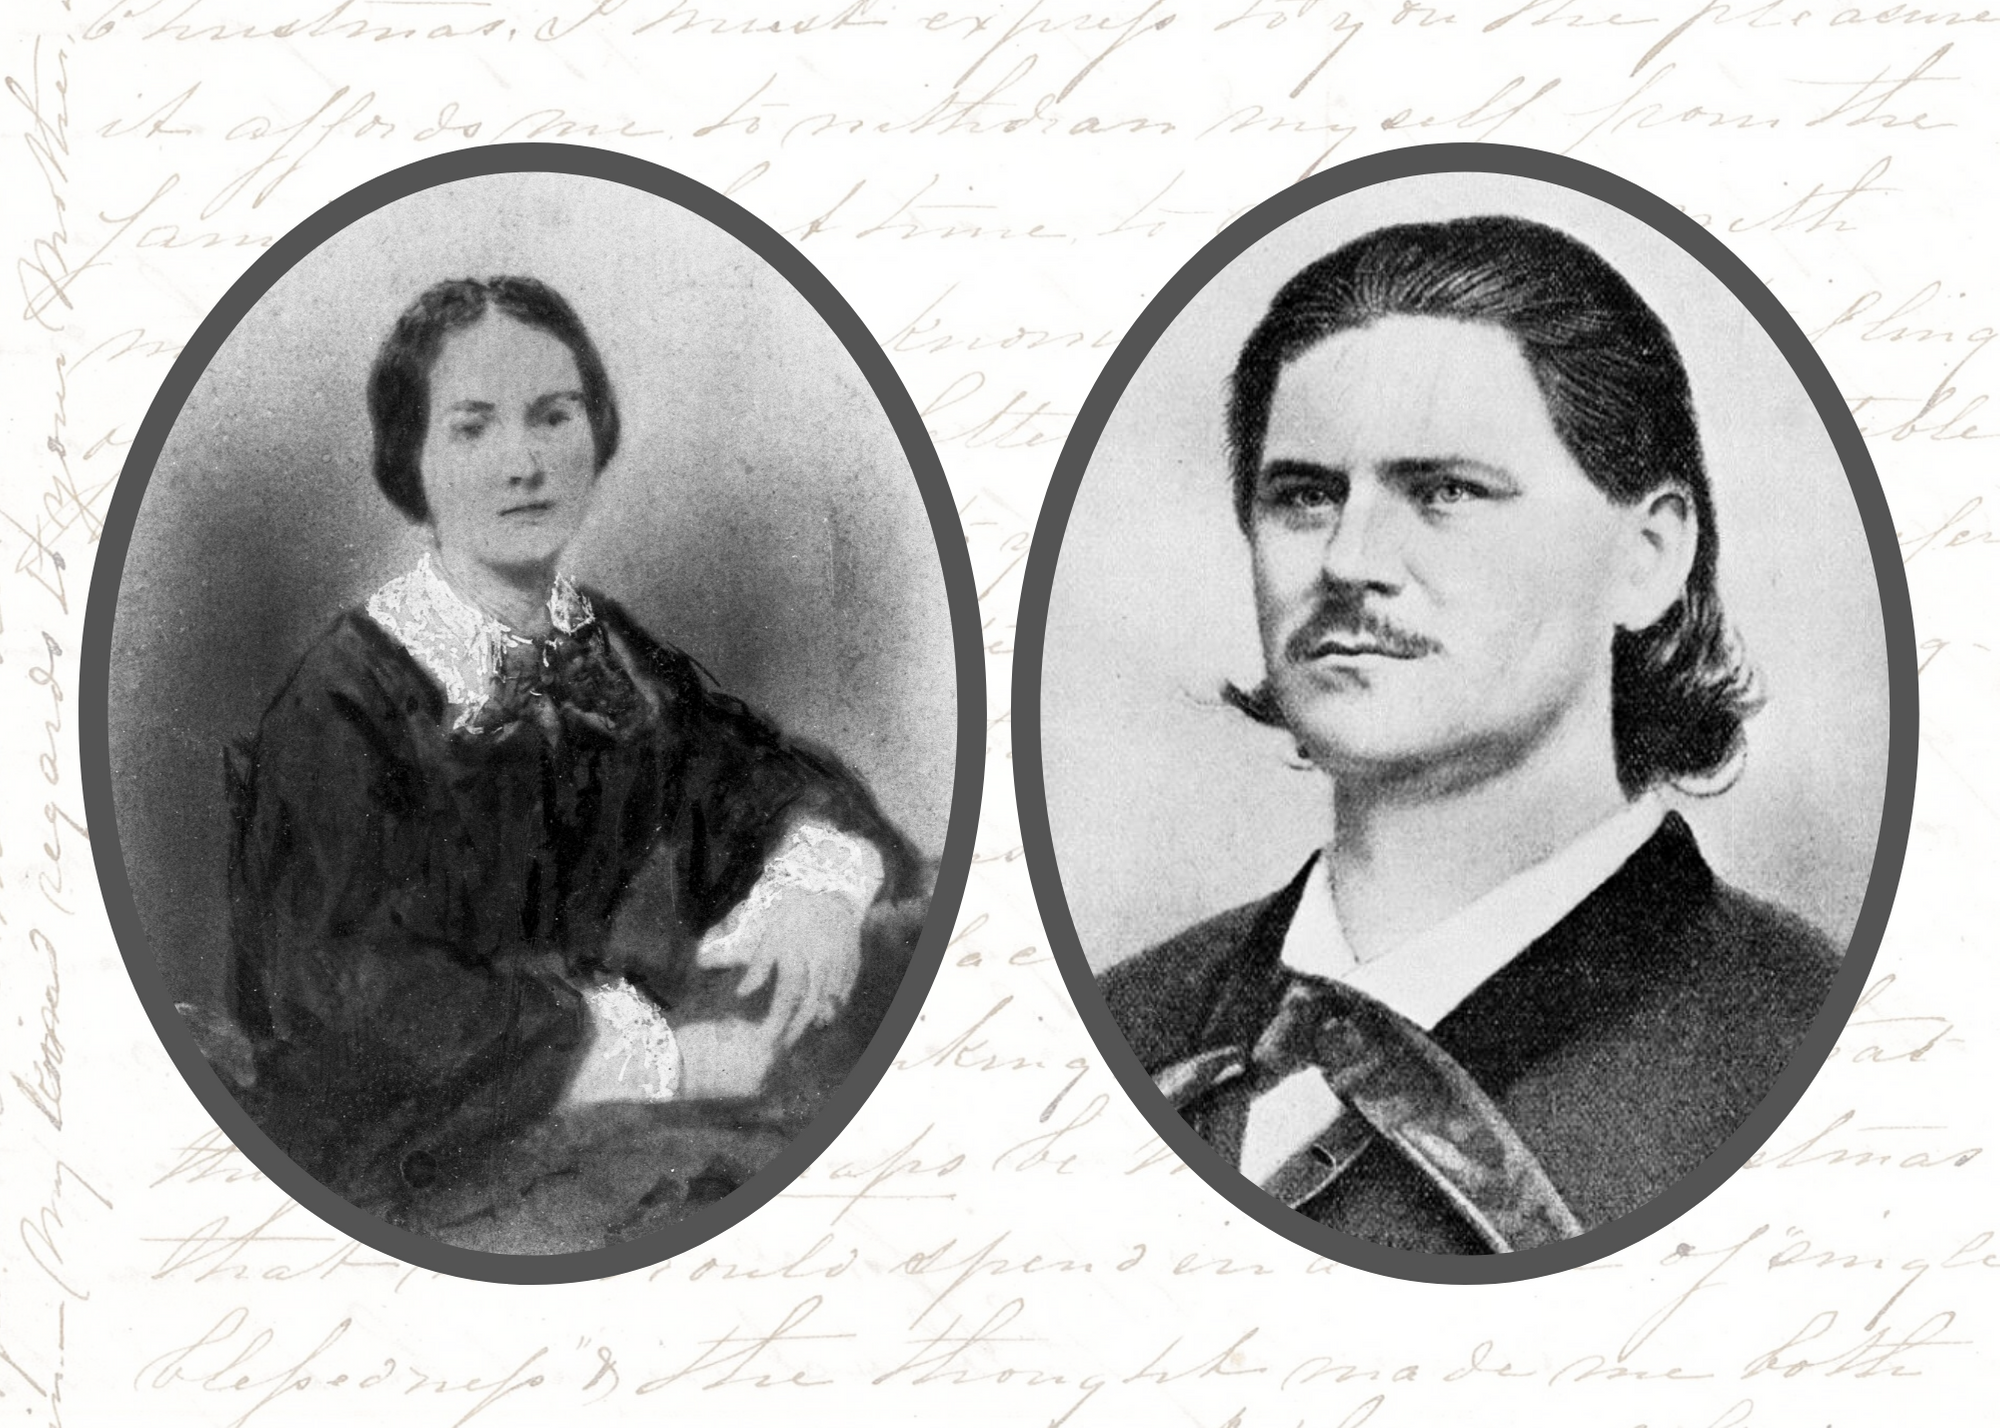 Portrait of a woman seated at left and headshot of man at right